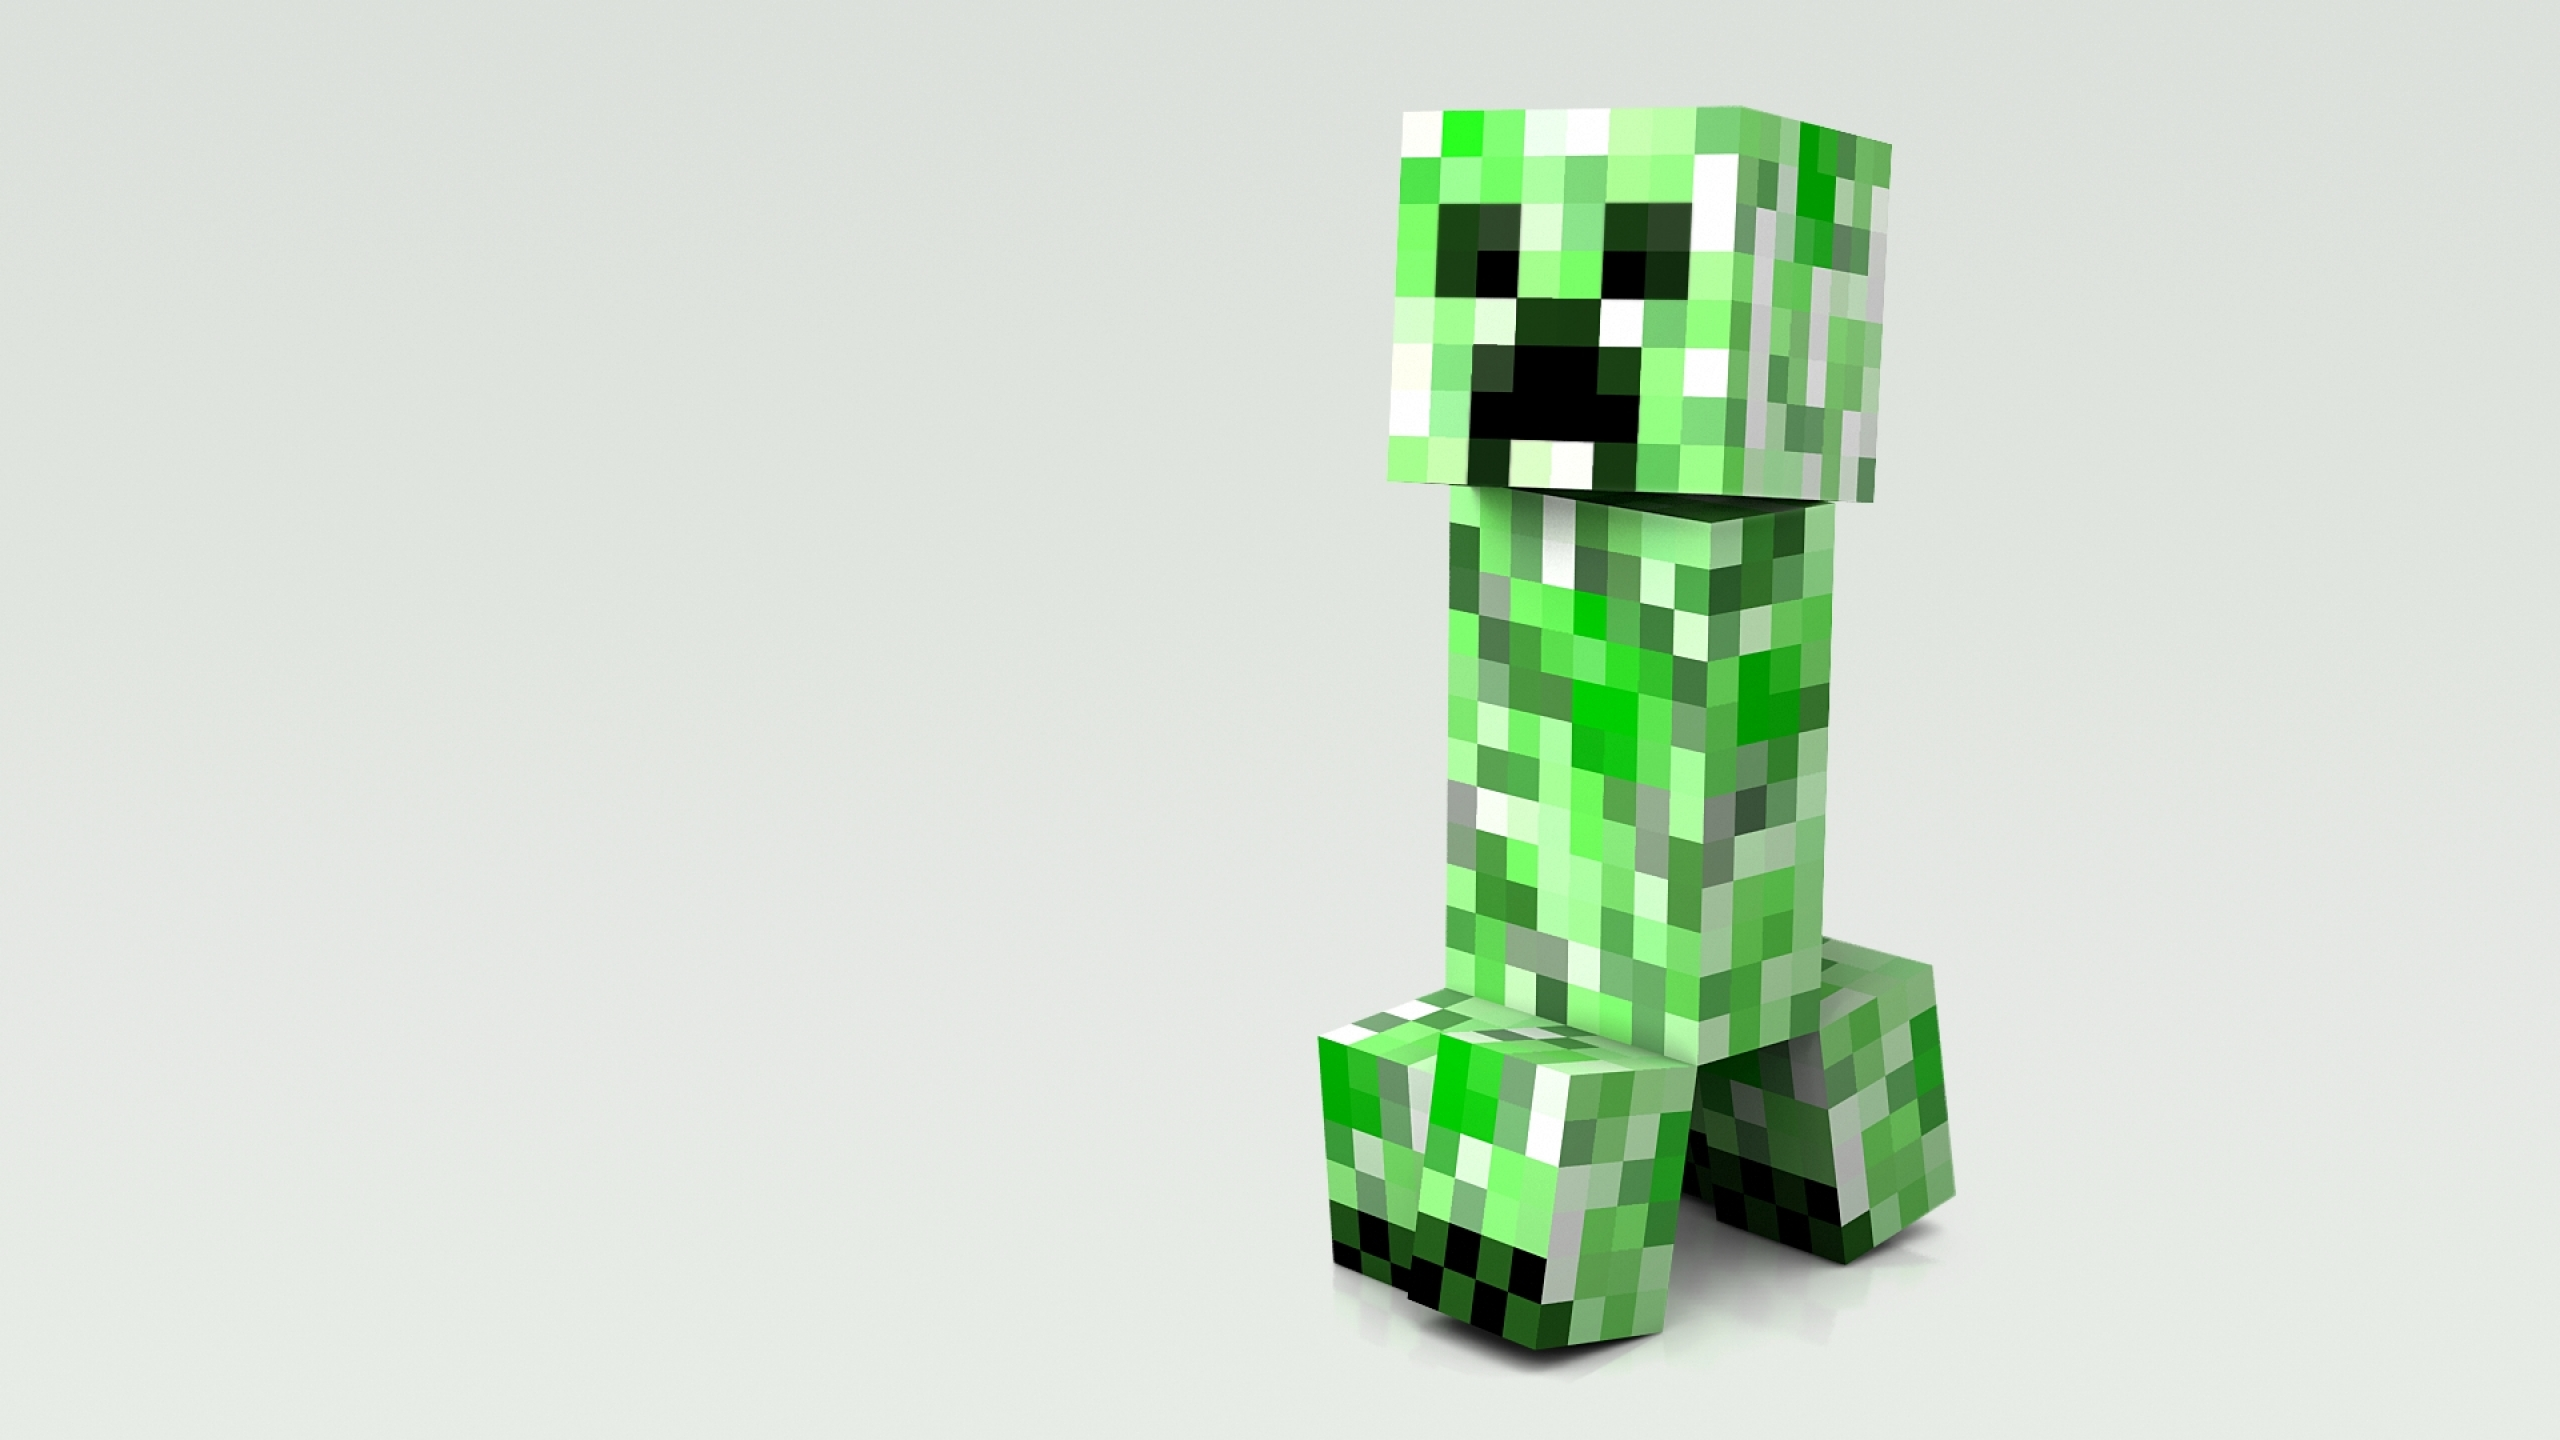 minecraft creeper fond ecran jeux video info. Black Bedroom Furniture Sets. Home Design Ideas